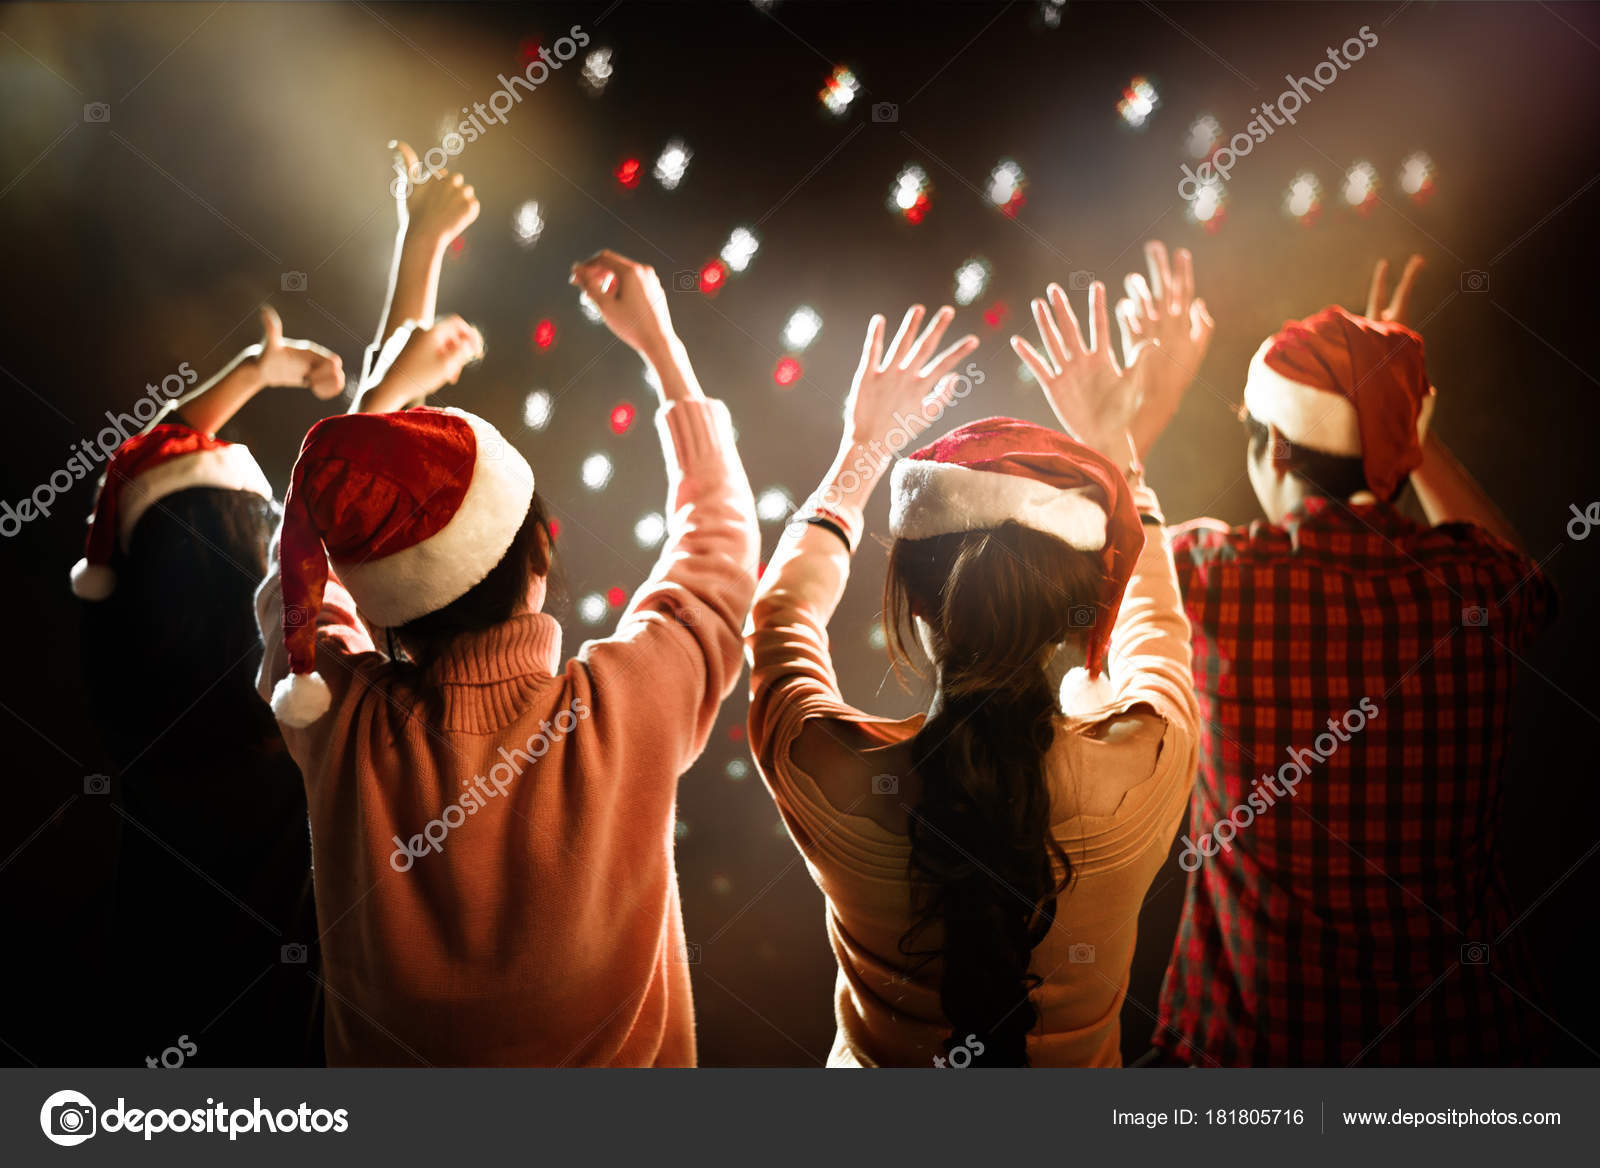 christmas and new year party celebration people and holiday concept dancing and celebrate theme photo by shutter2u